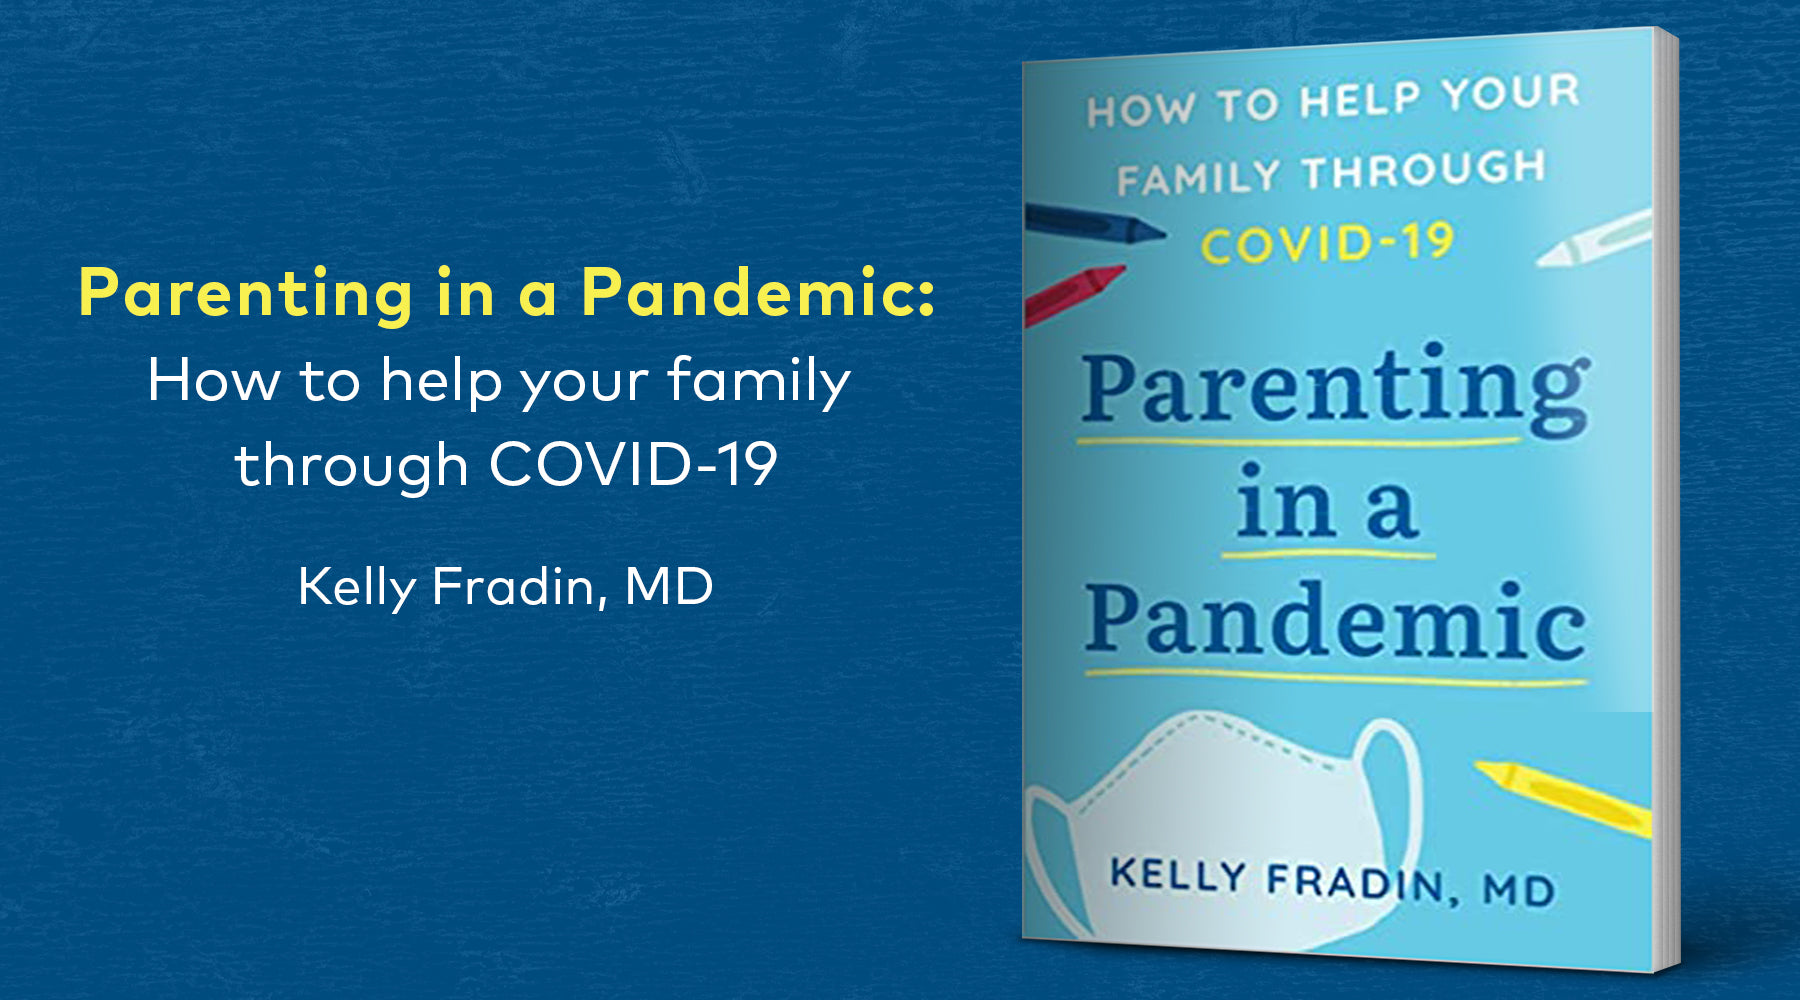 Parenting in a Pandemic by Kelly Fradin